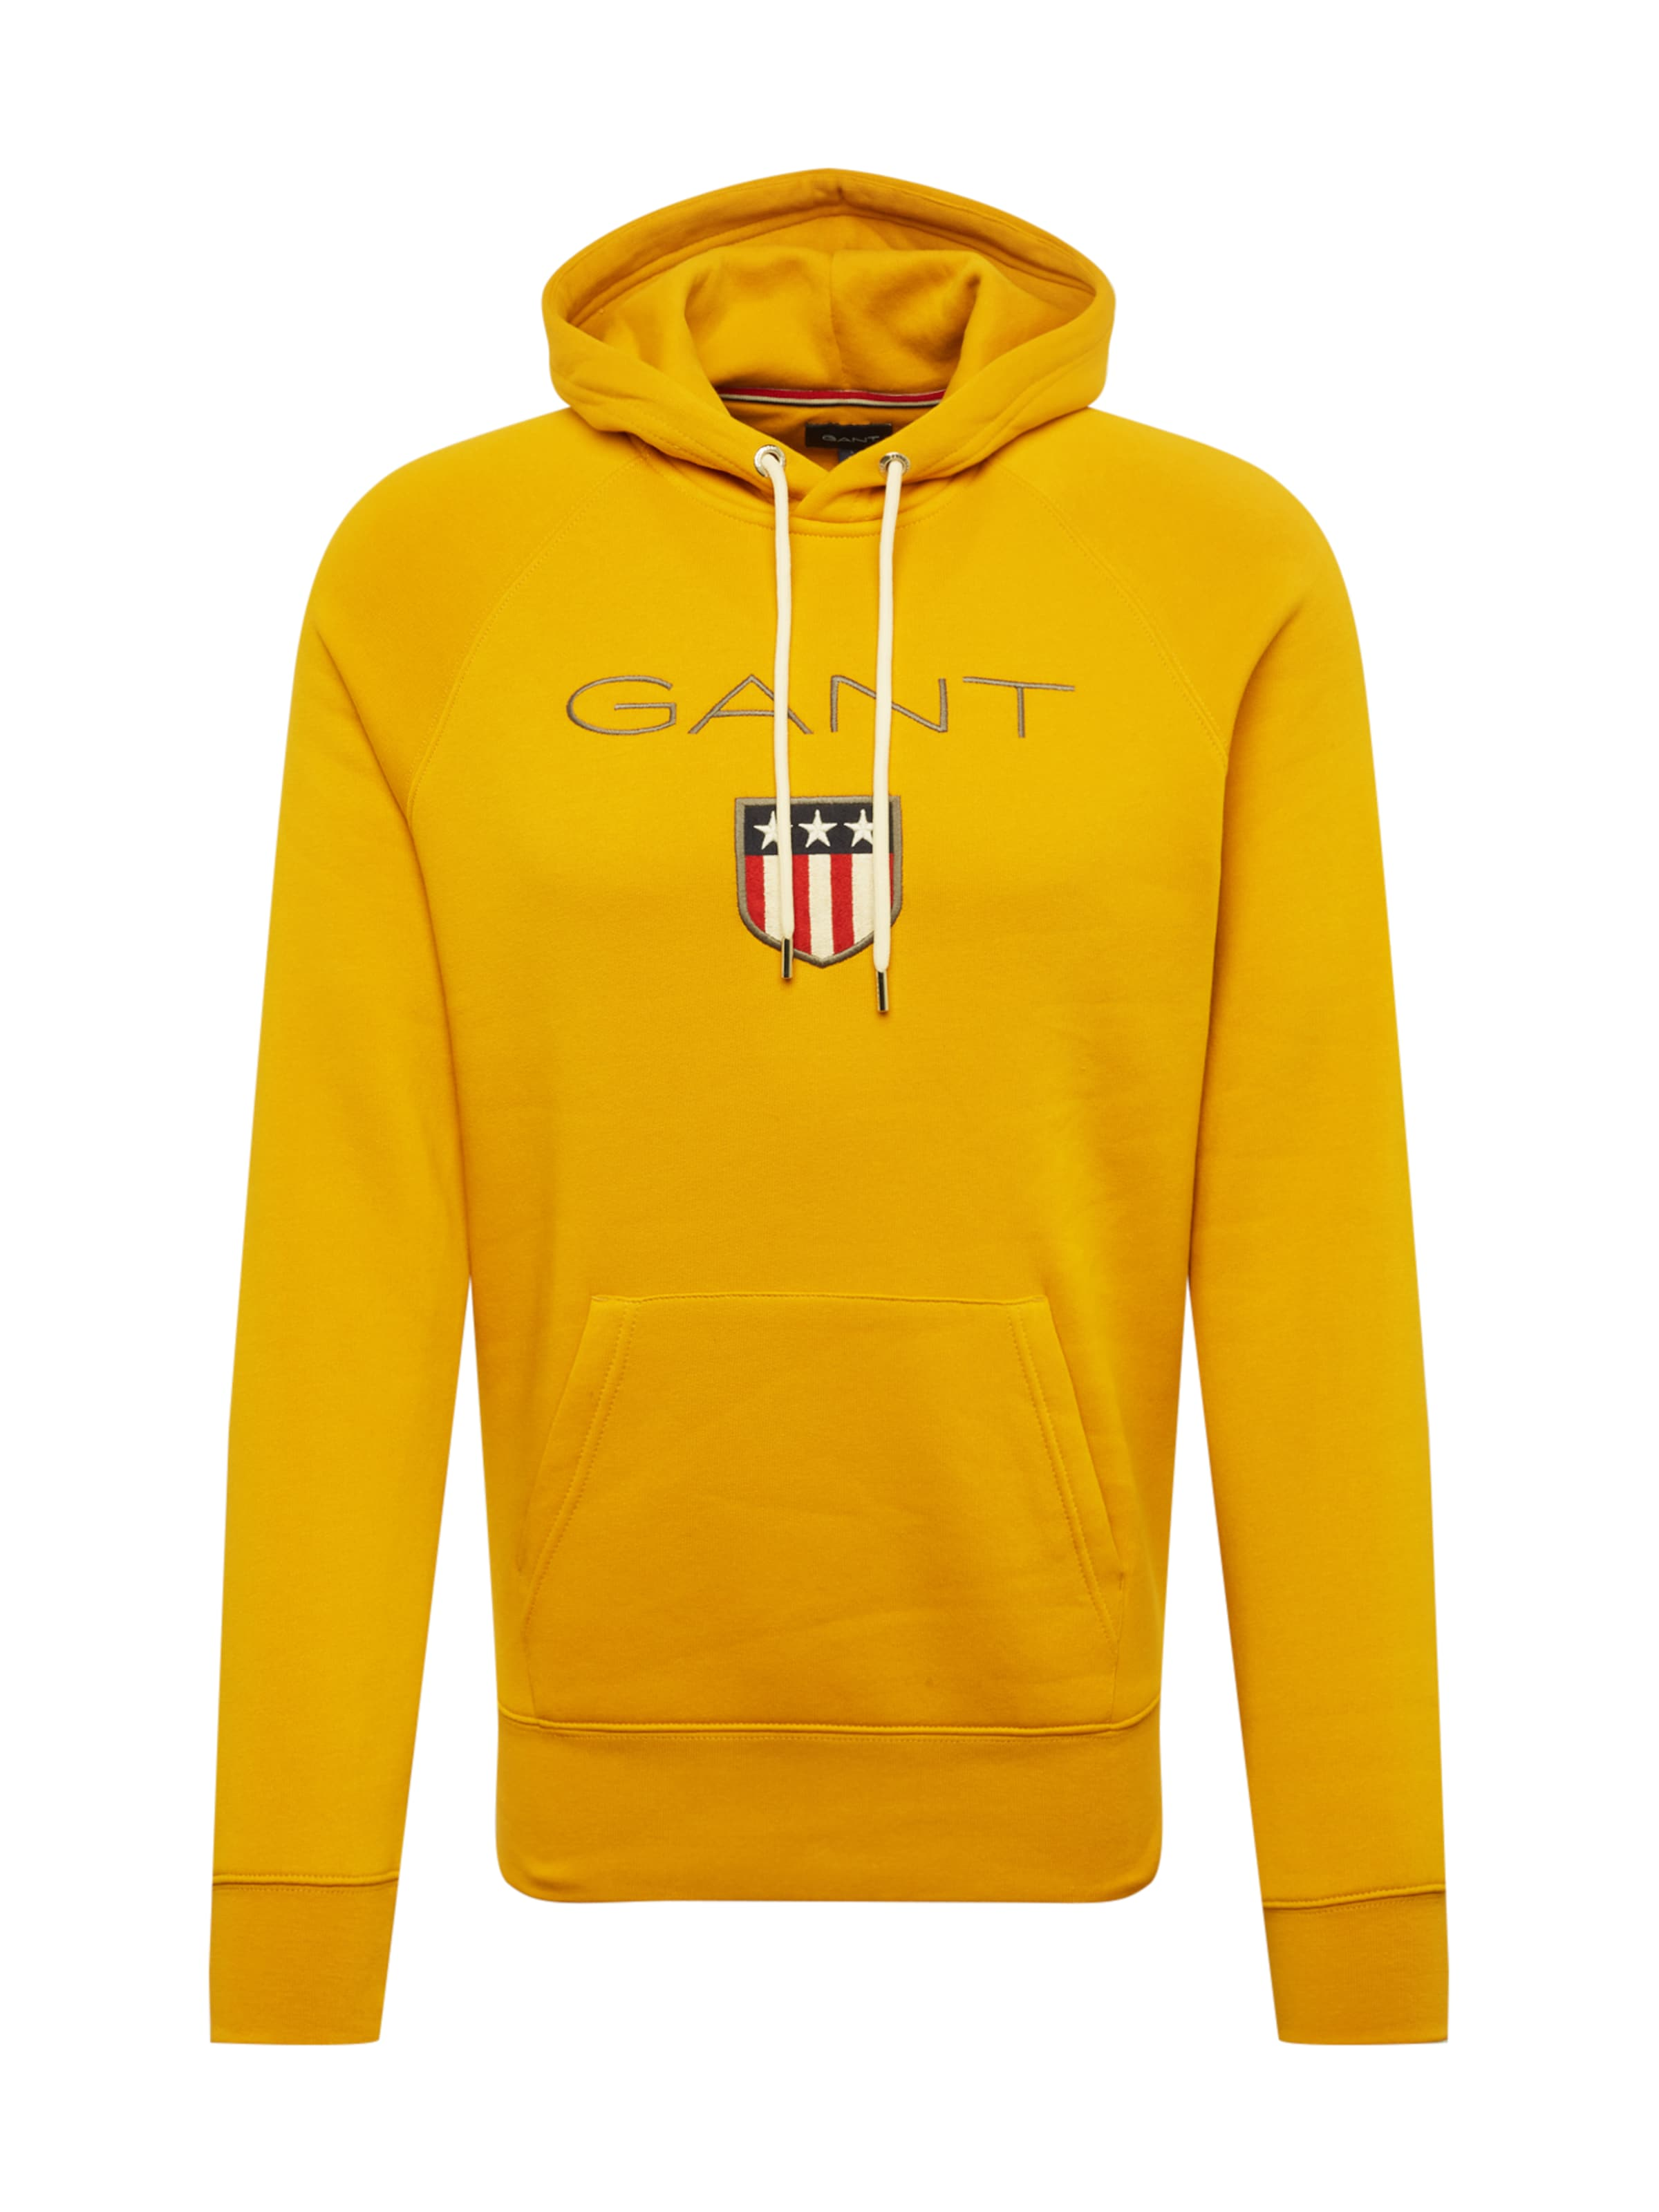 En Gant shirt D'or Jaune Sweat bgY6v7yf